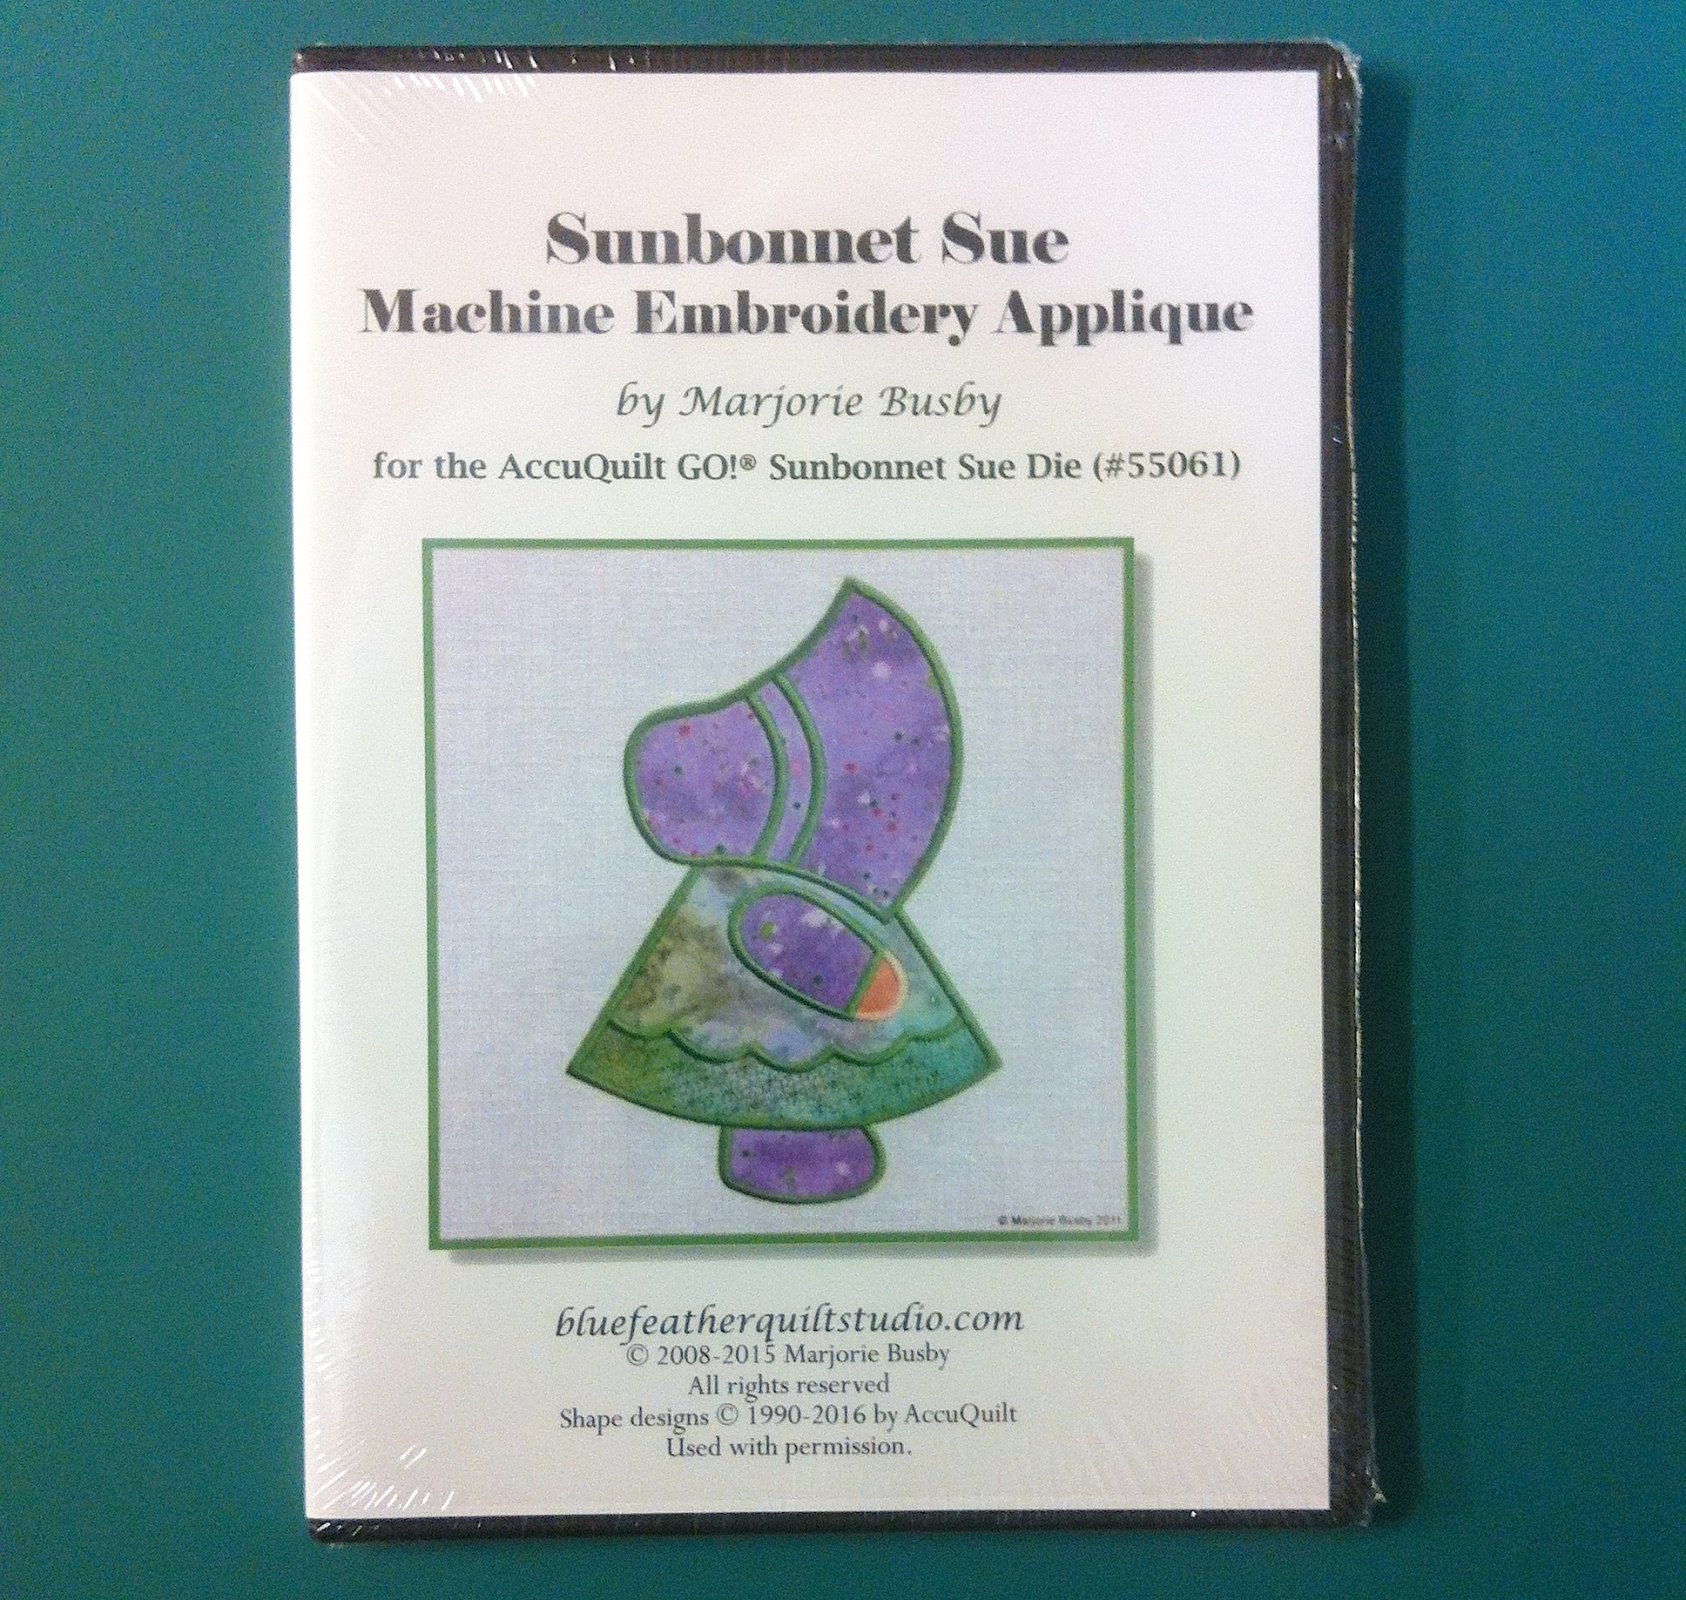 Sunbonnet Sue Machine Embroidery Applique